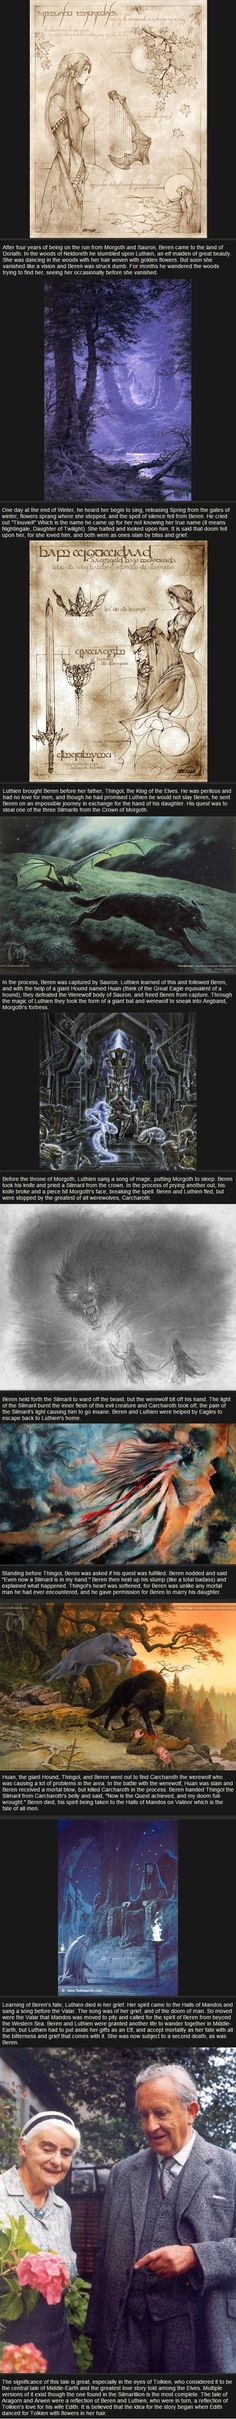 Relatively Unknown LoTR Facts - Of Beren and Luthien